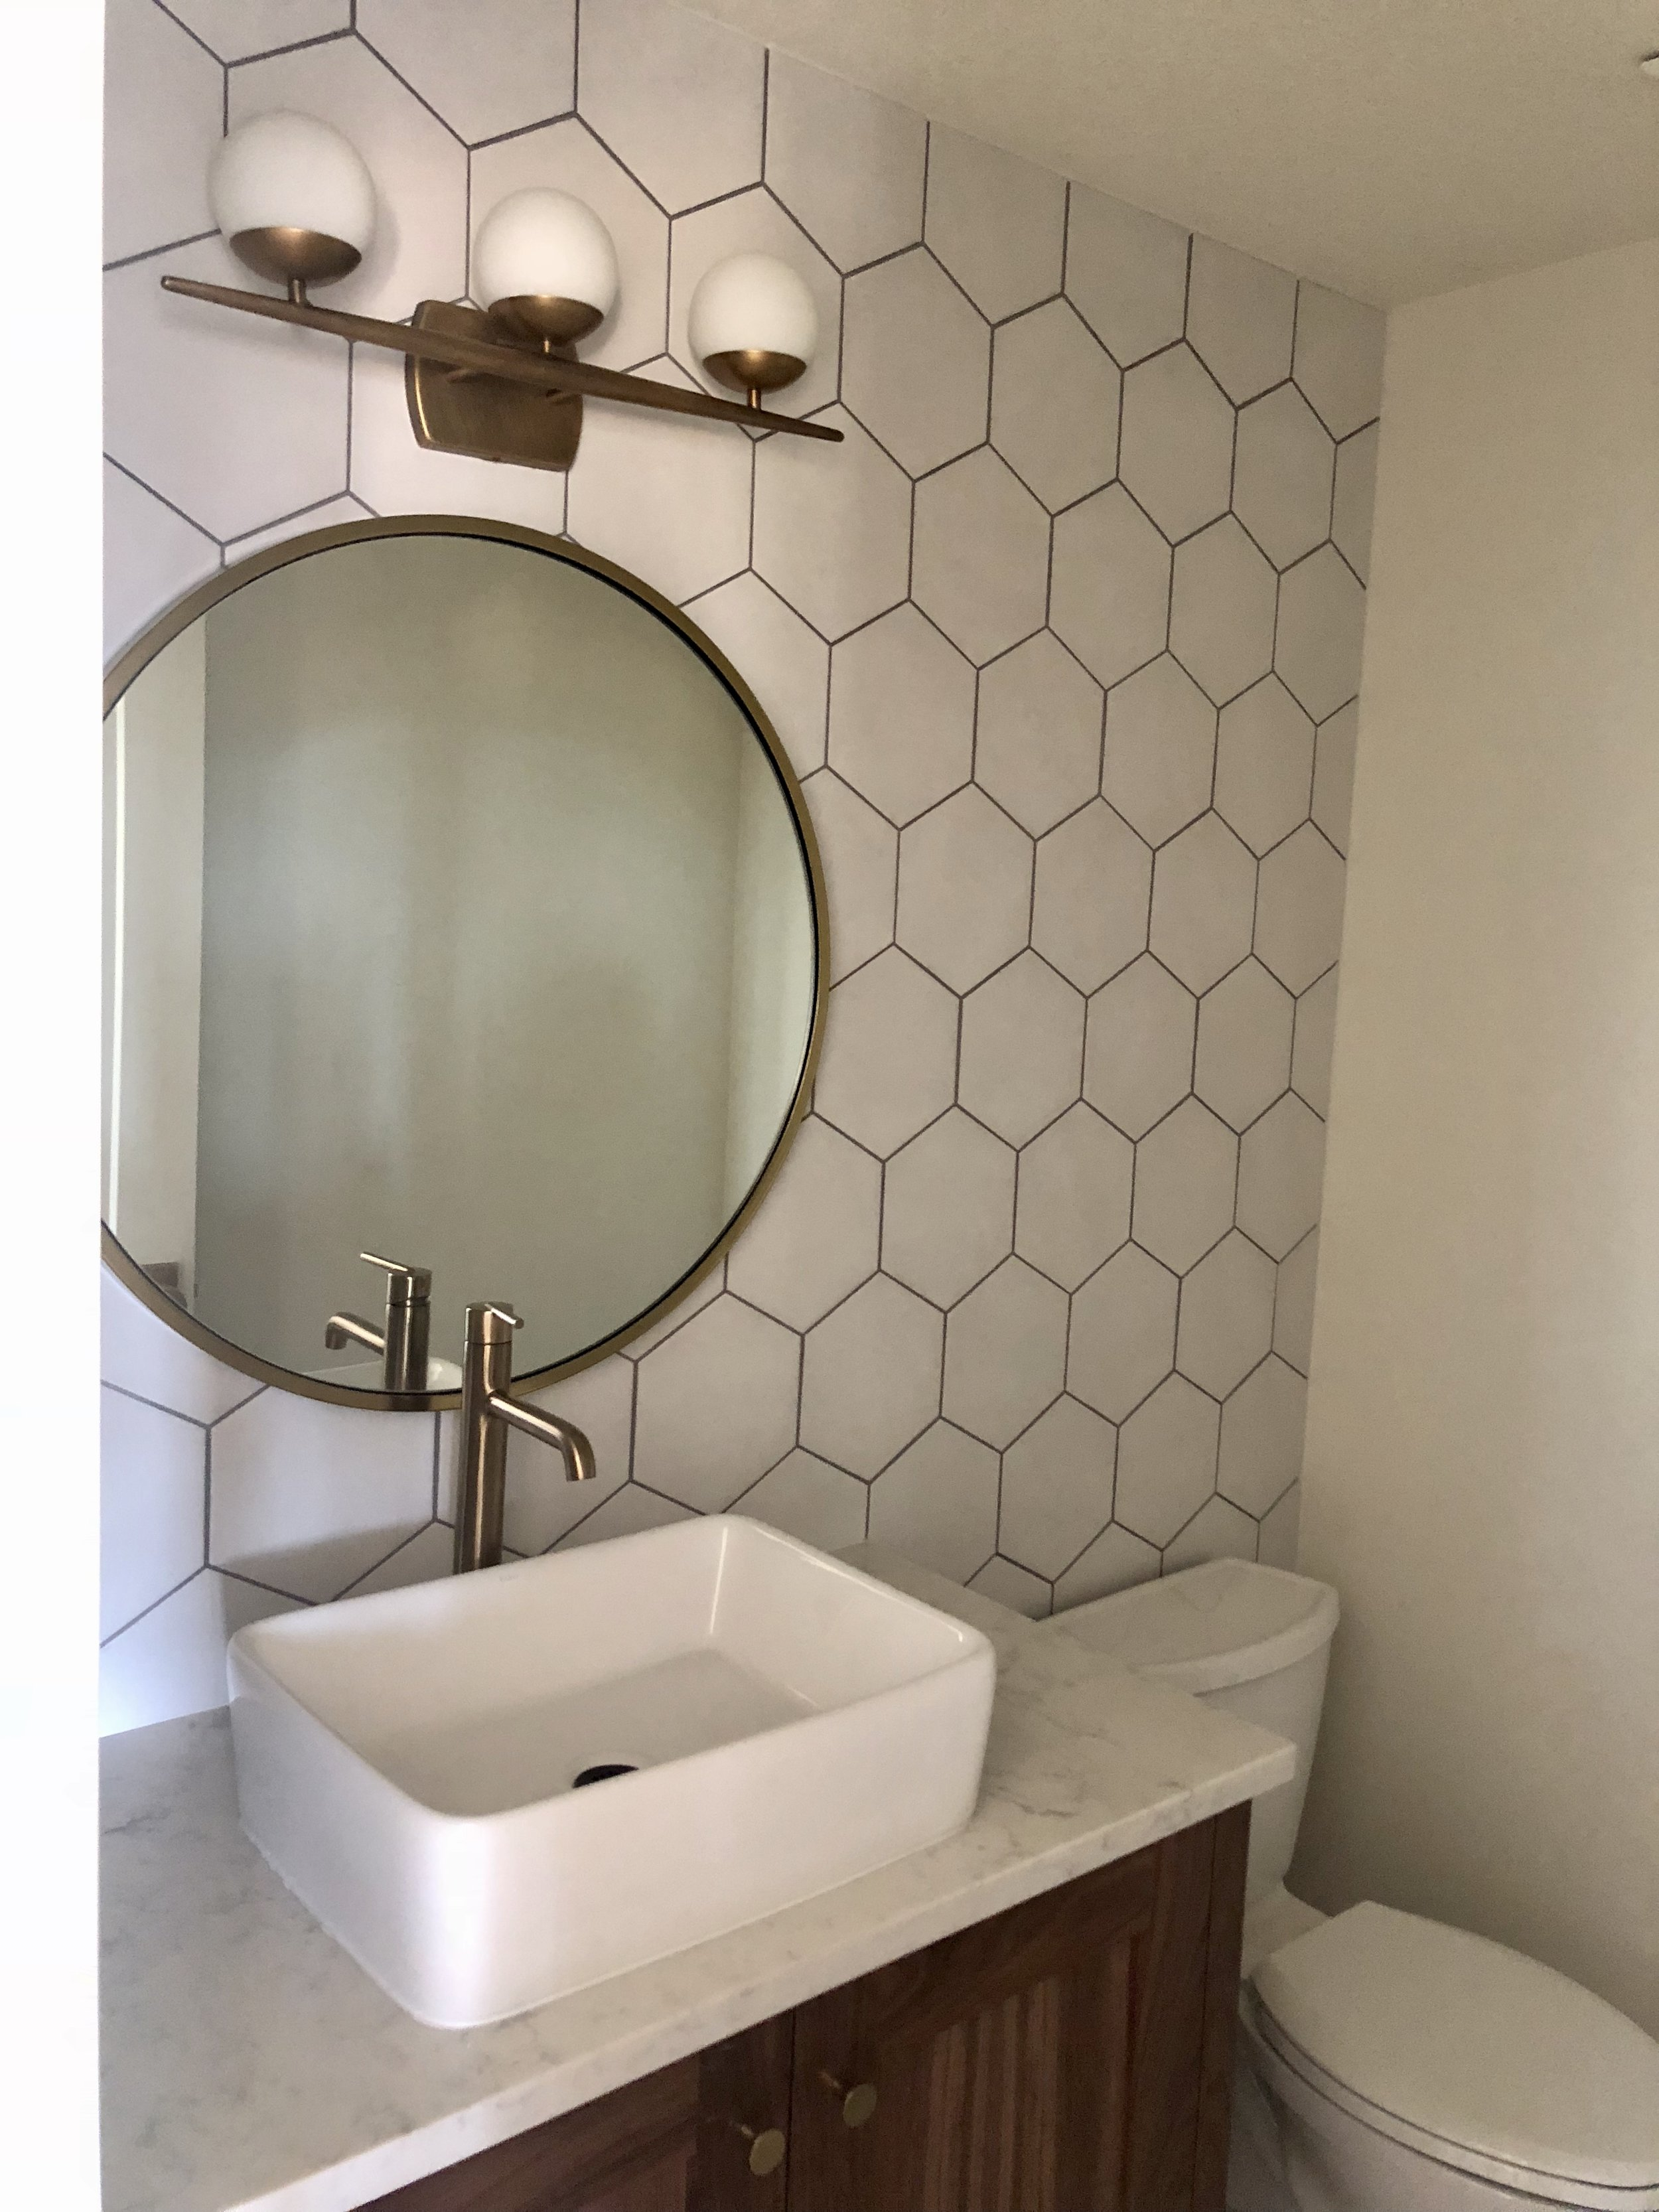 I wish I had a photo of a before powder bath, but it was very dark, outdated with green toilet. This is the AFTER! Client knew what she wanted! She has great taste.